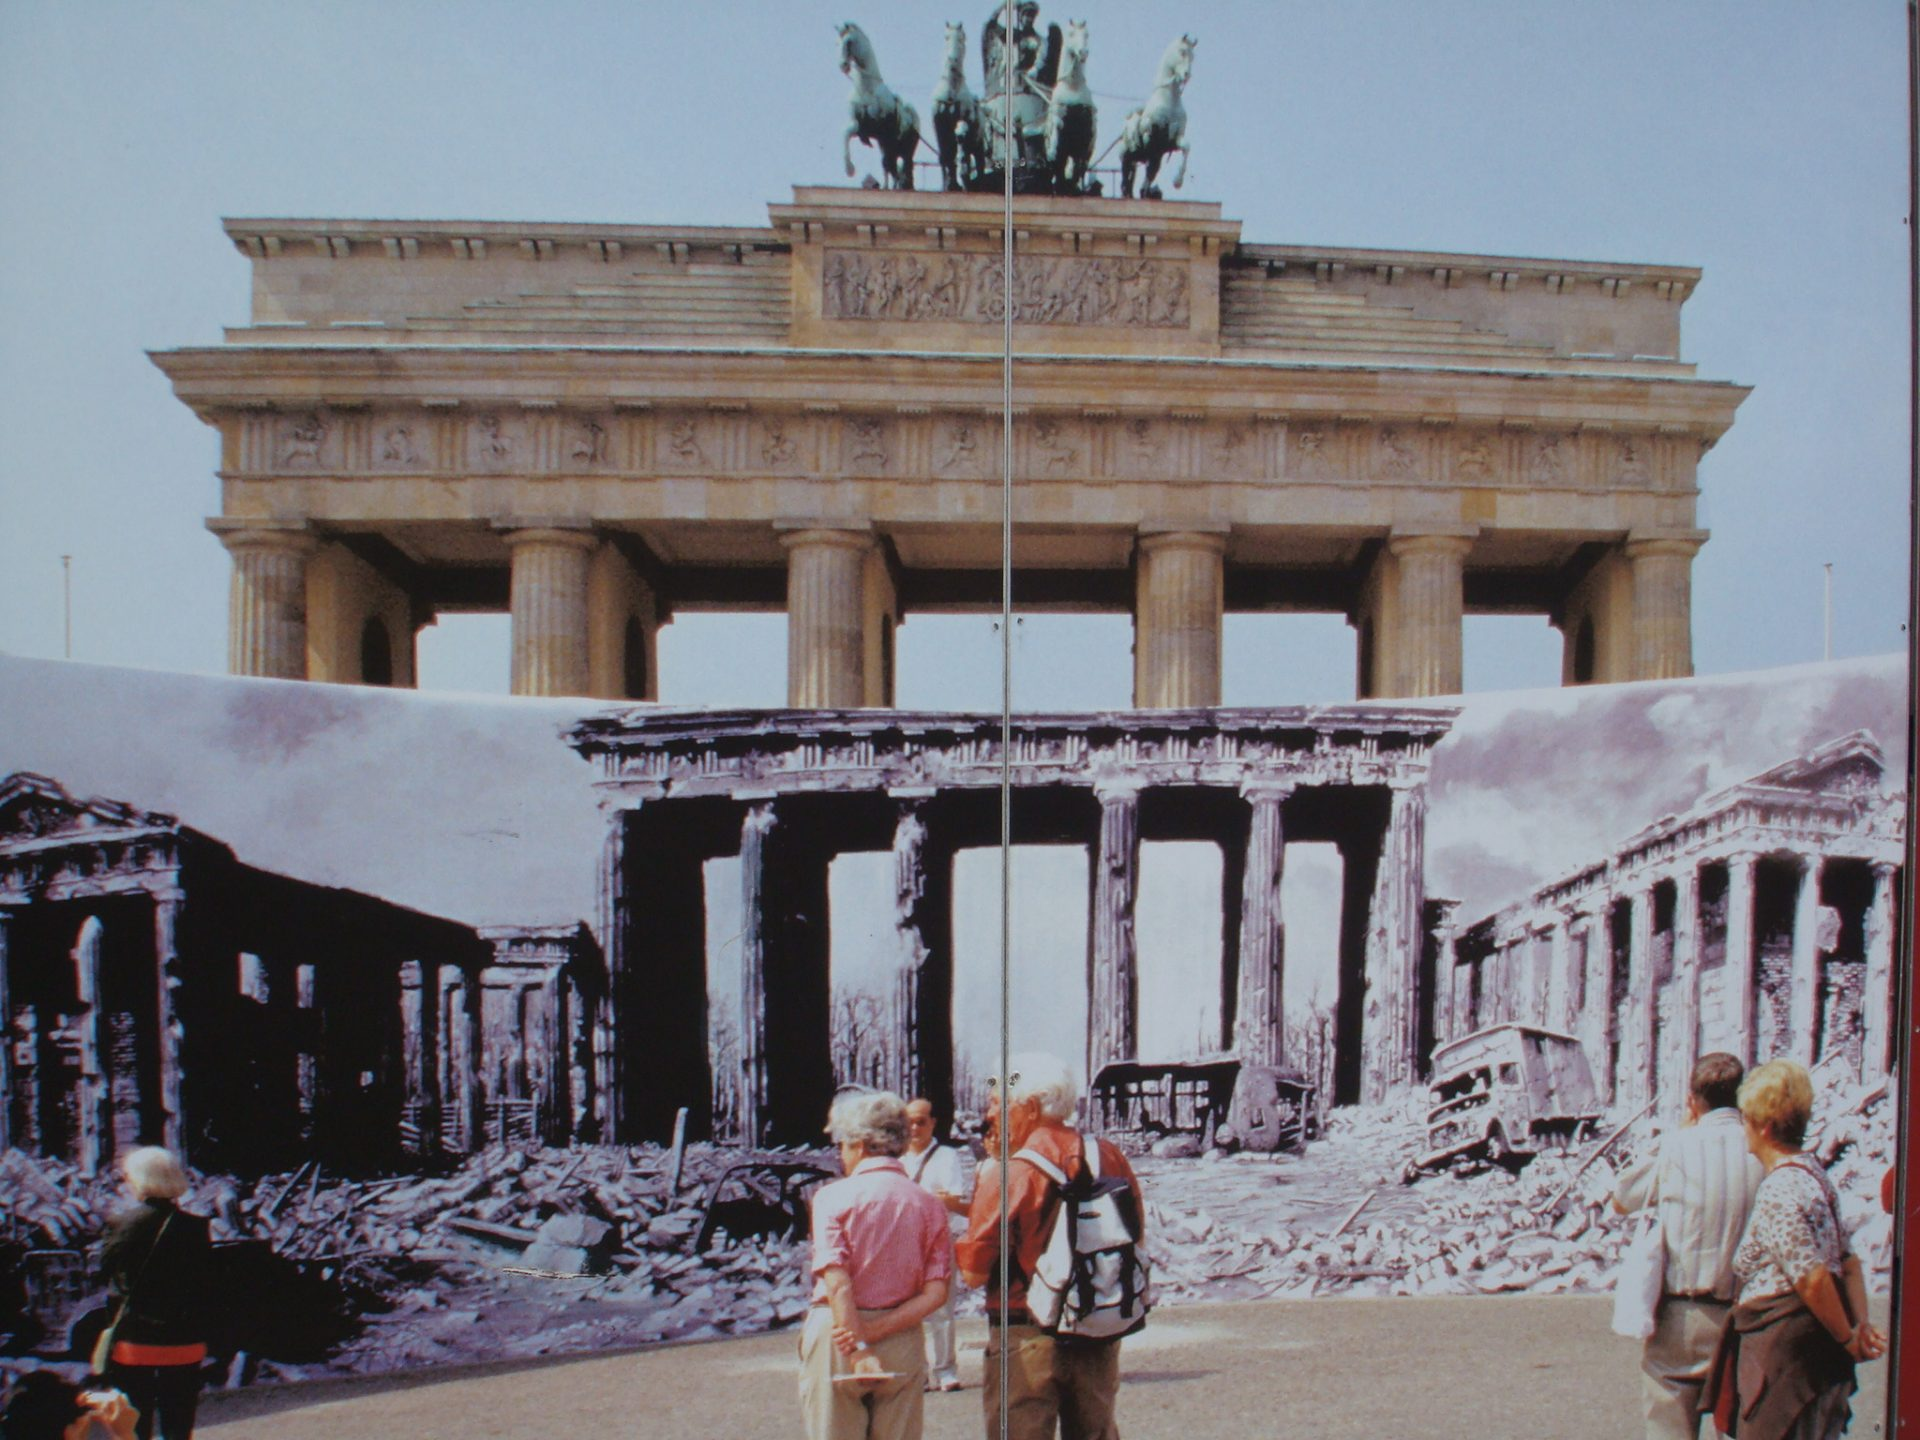 This photo, on the Wall memorial, perfectly depicts the conflicting images